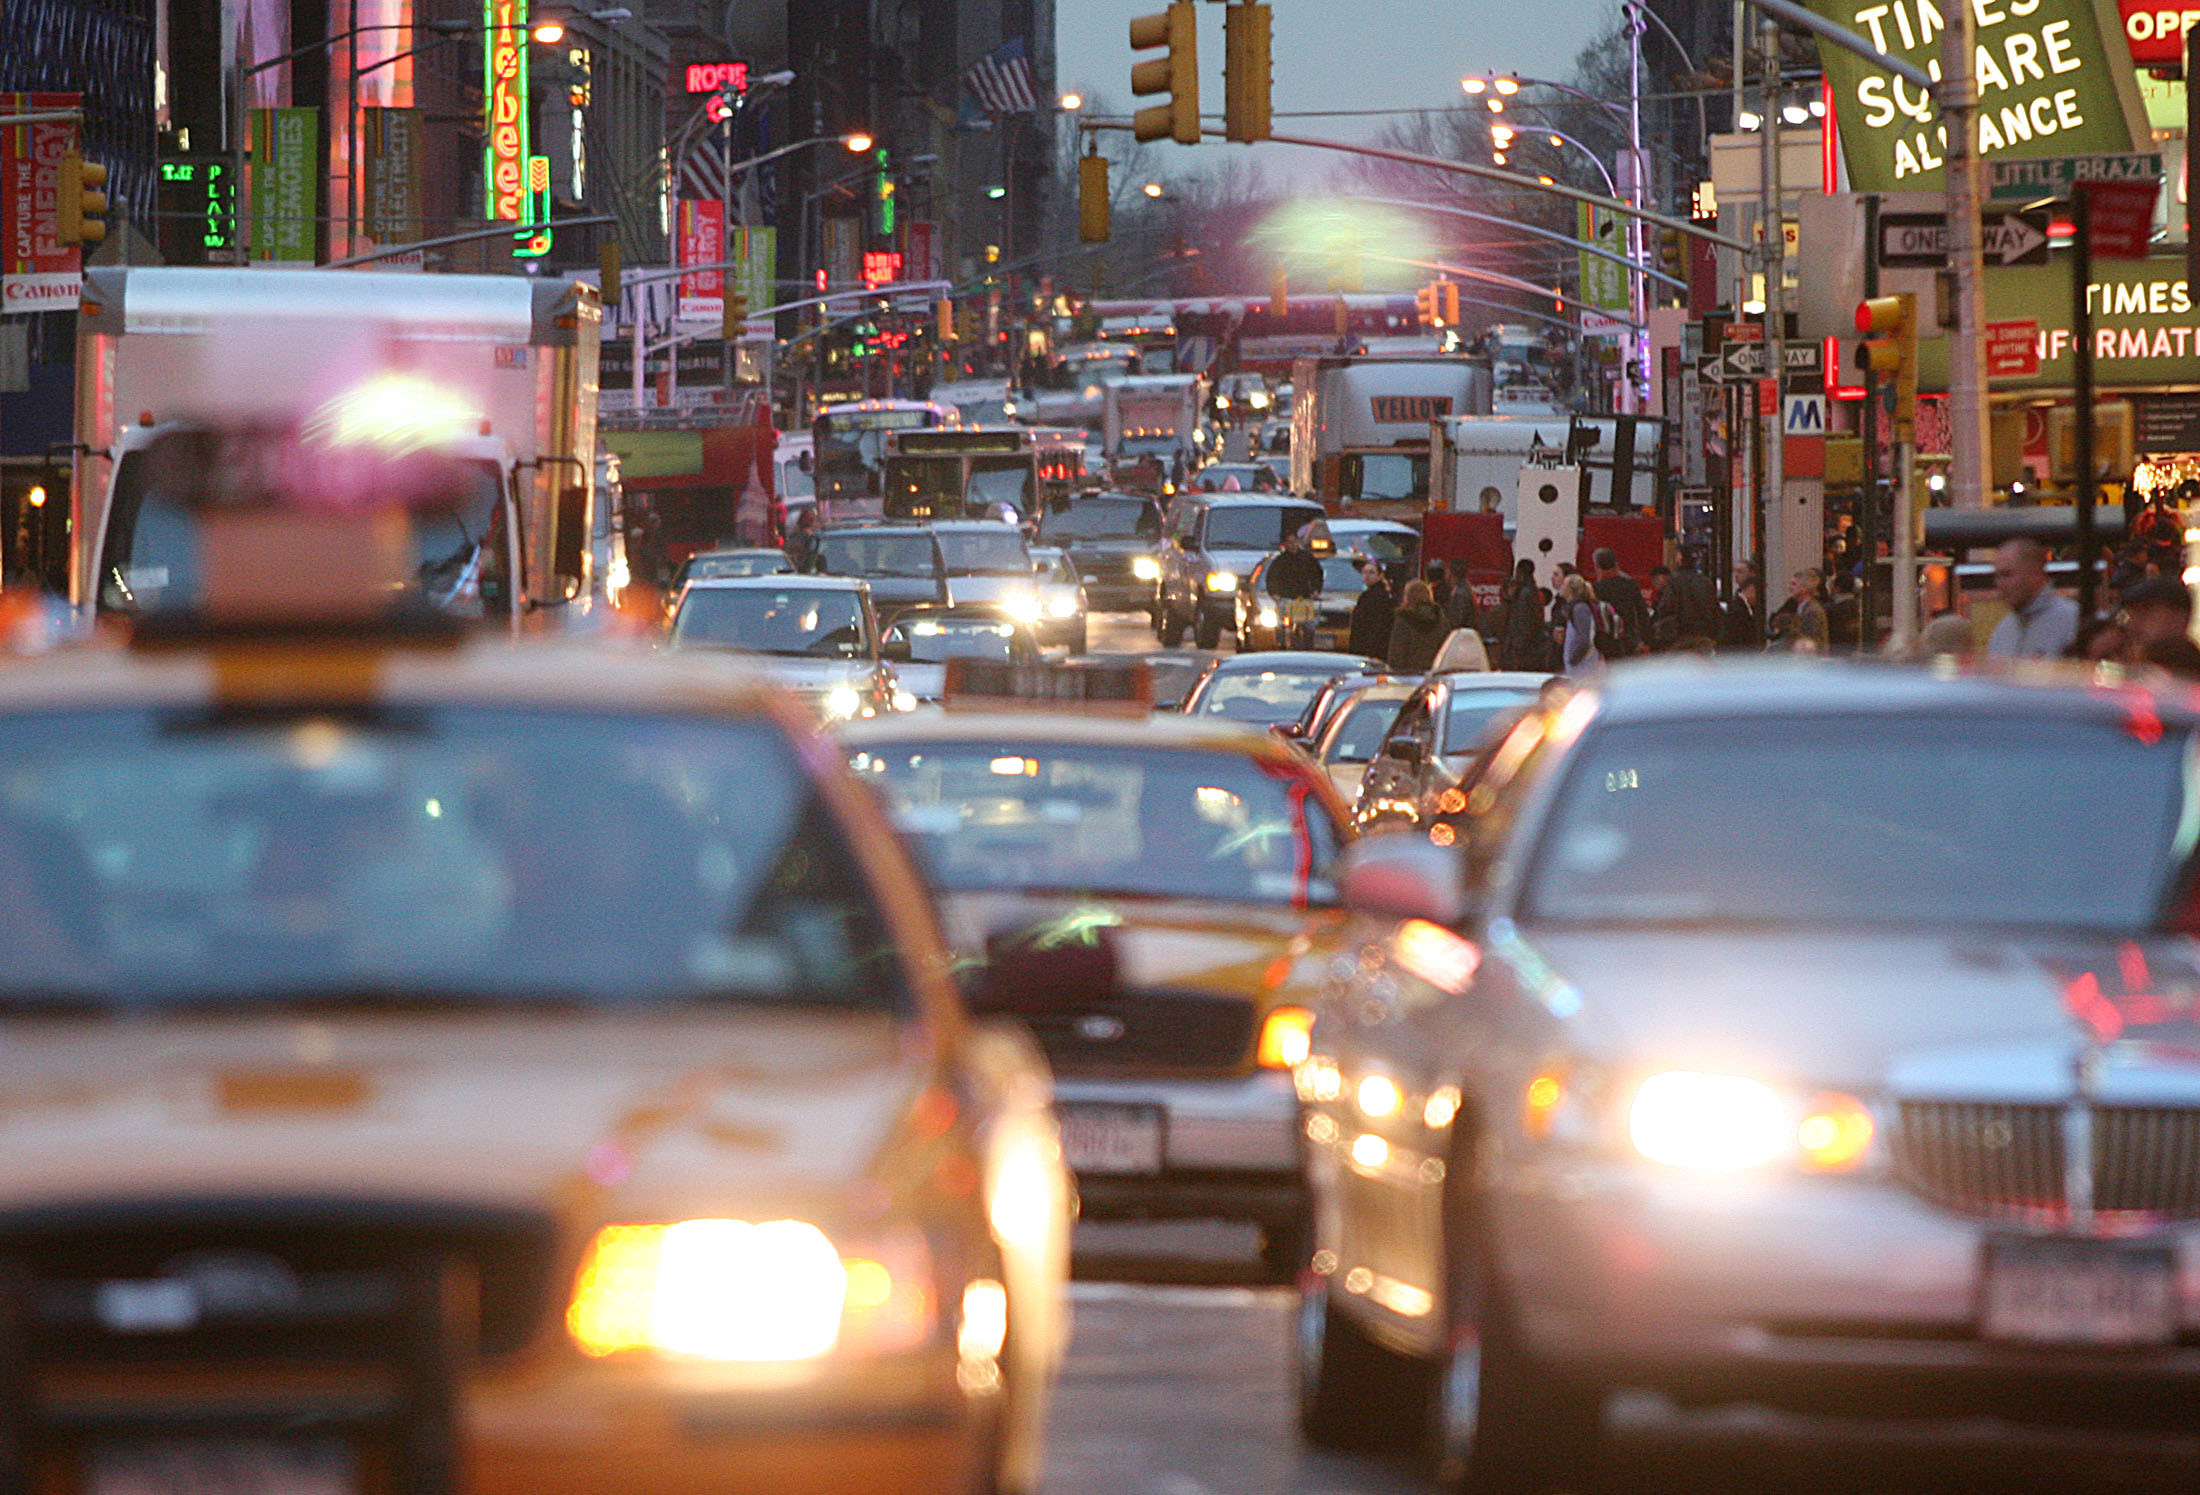 Cars squeeze into any space as they try to get though Time Square in new York City on November 30, 2004. REUTERS/Seth Wenig  SW - RP5DRICVUDAA